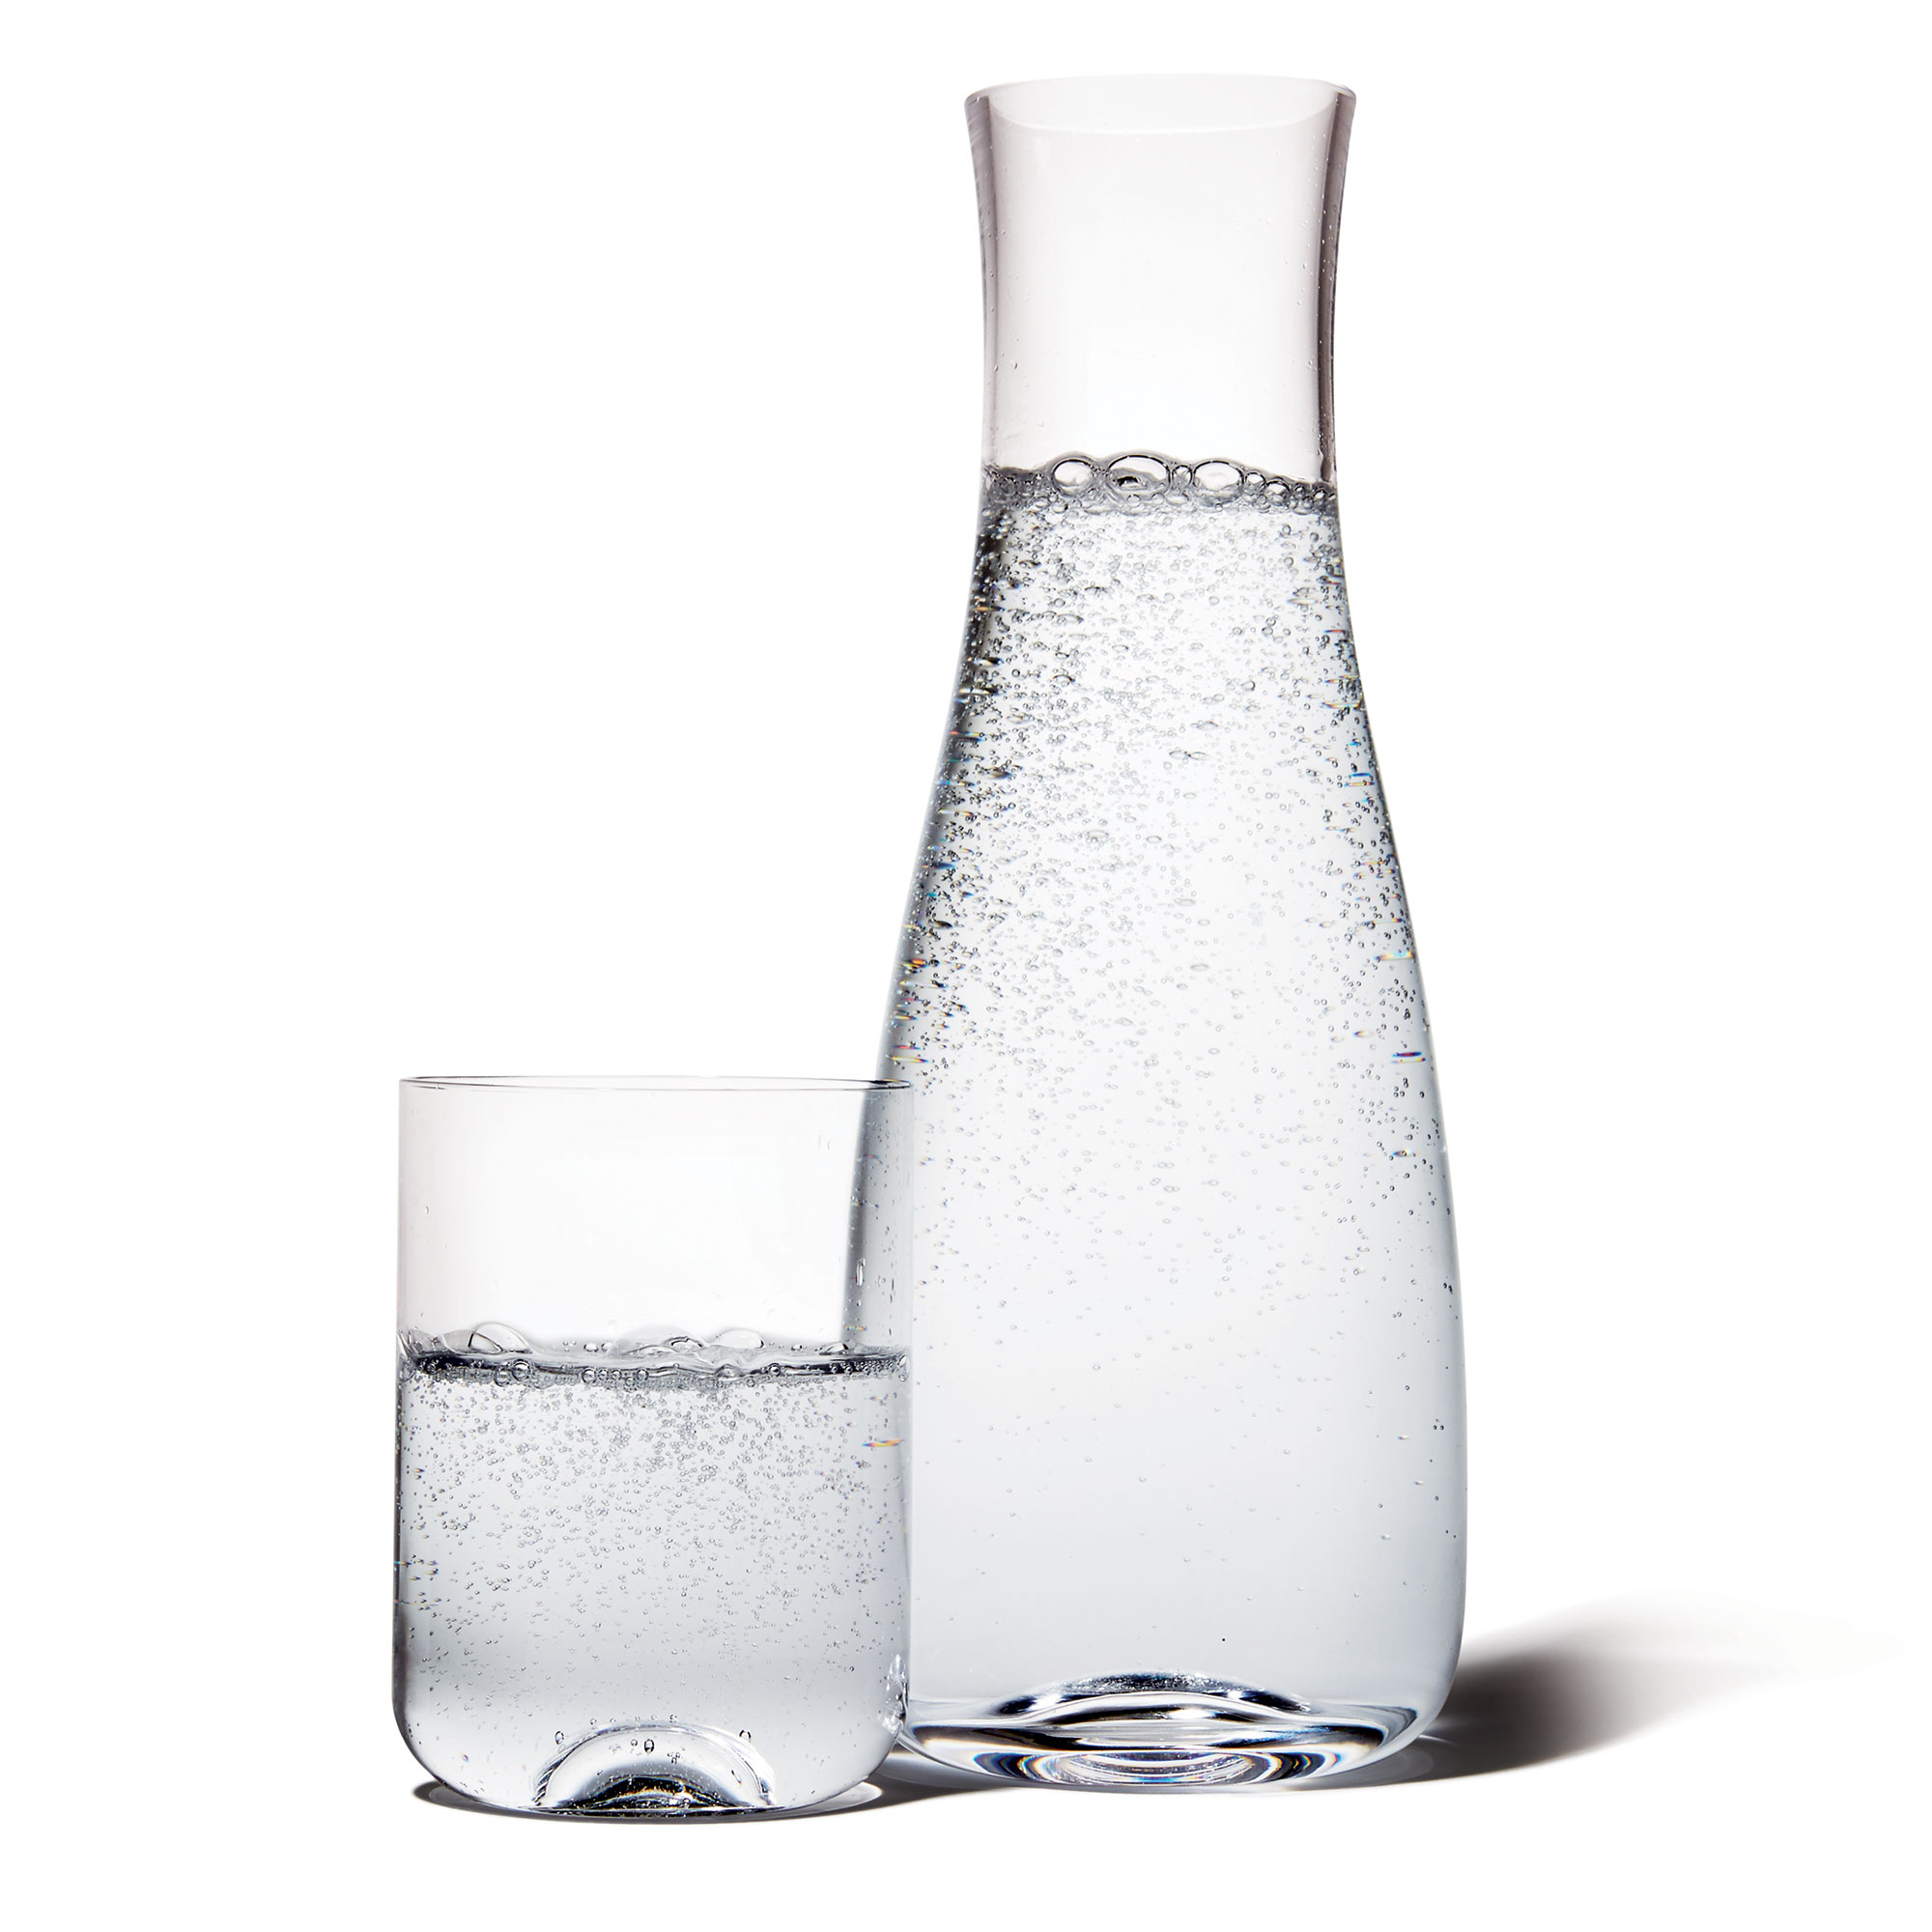 Crate and Barrel Oasis Bed Carafe with Glass